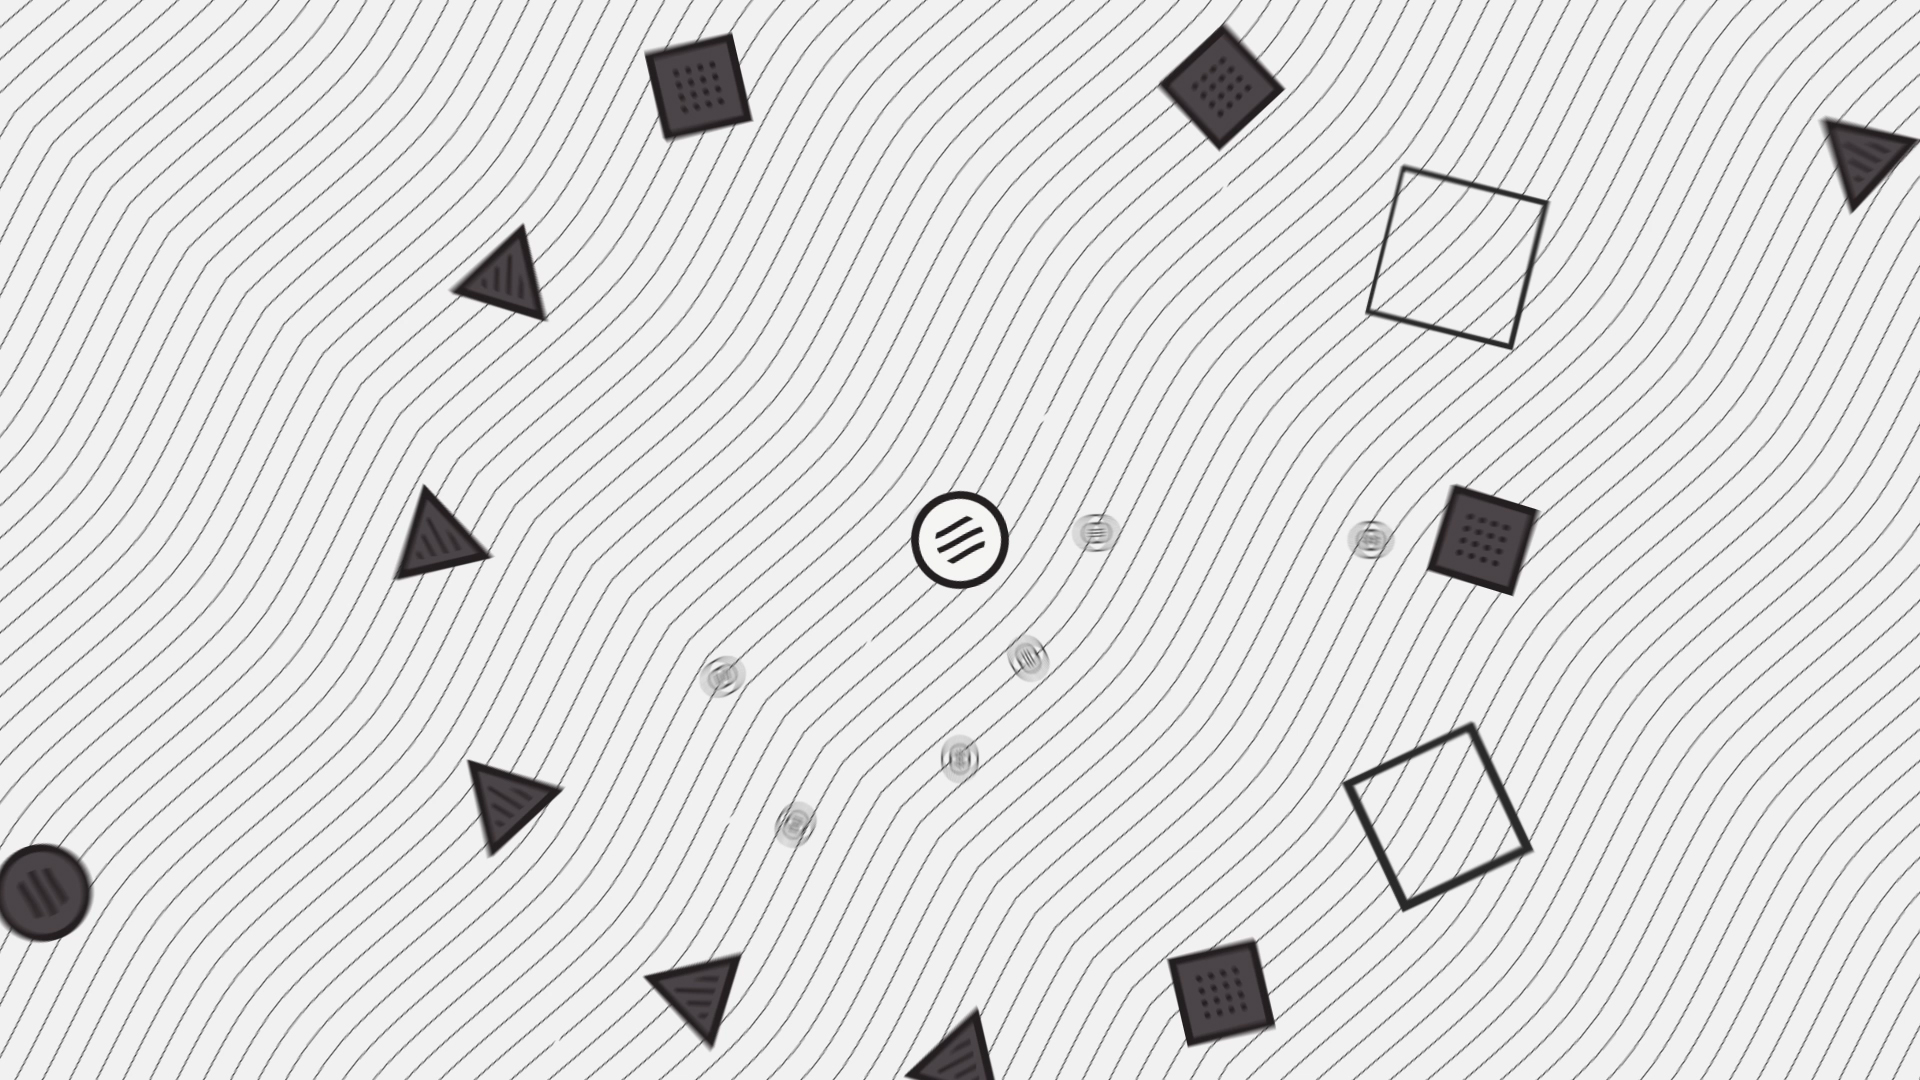 SHAPES & SOUND: THE SHAPE SHOOTER